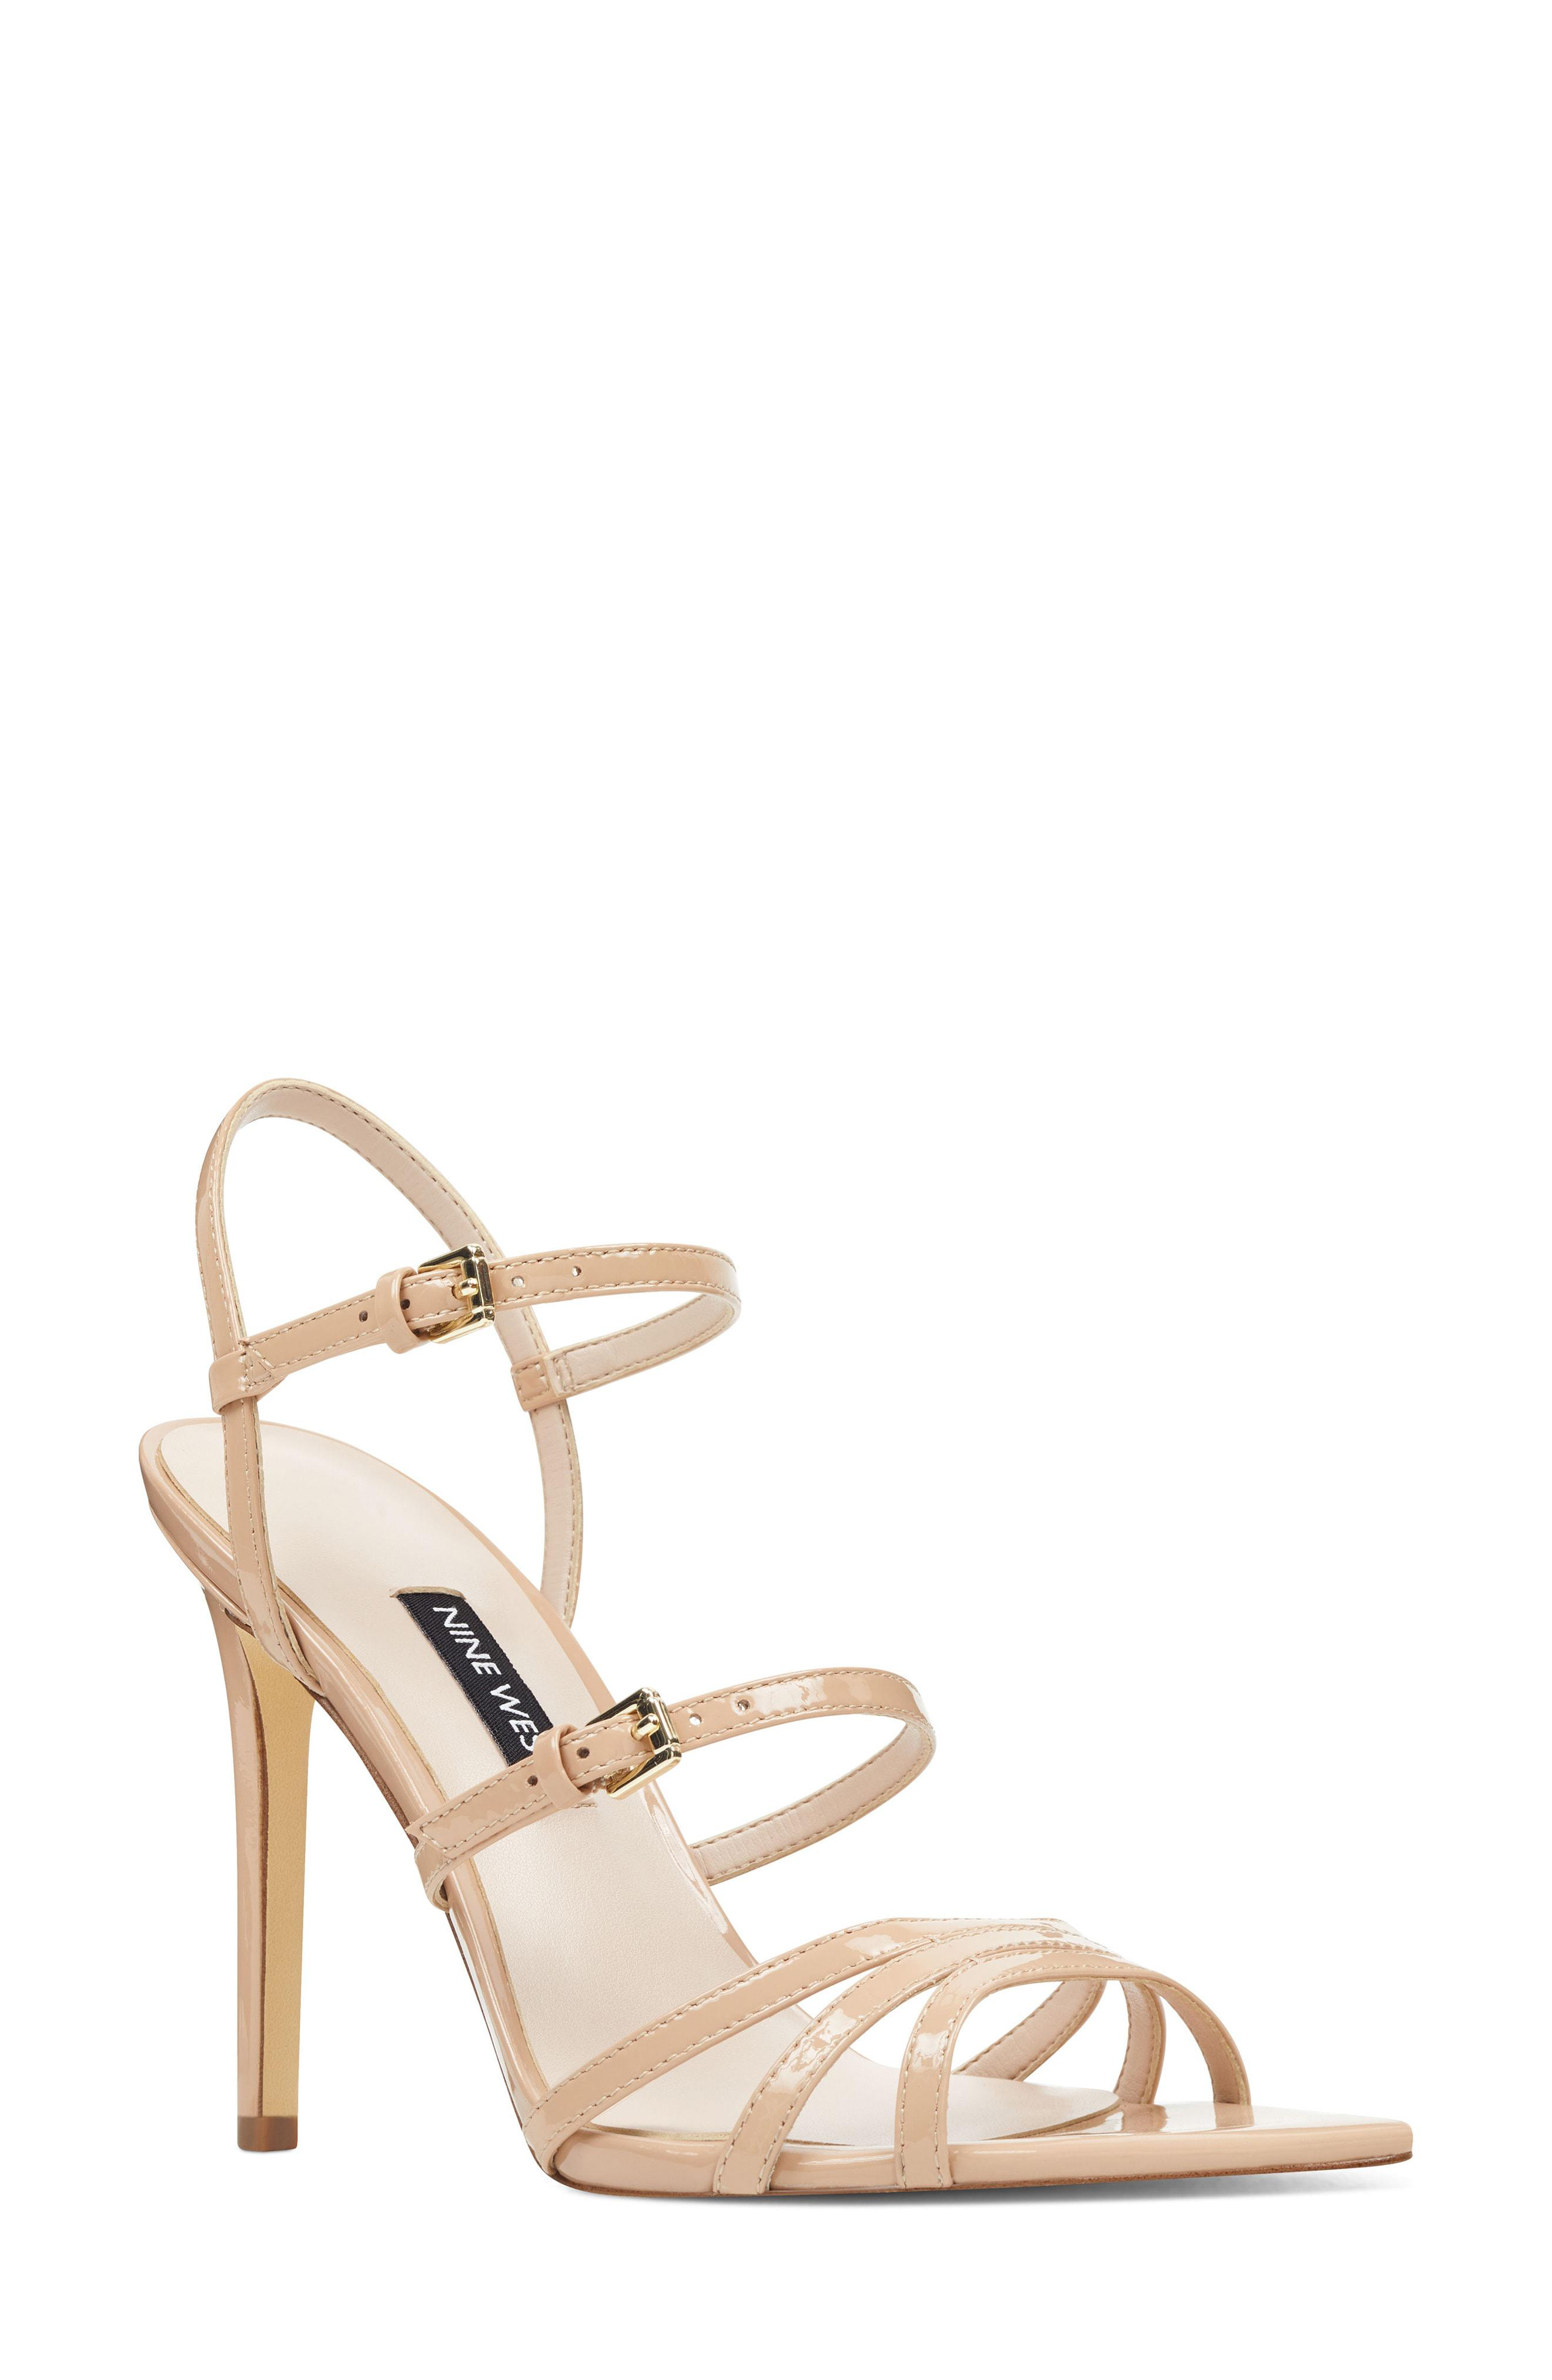 d055d2629289 Lyst - Nine West Gilficco Strappy Sandal in Yellow - Save 56%